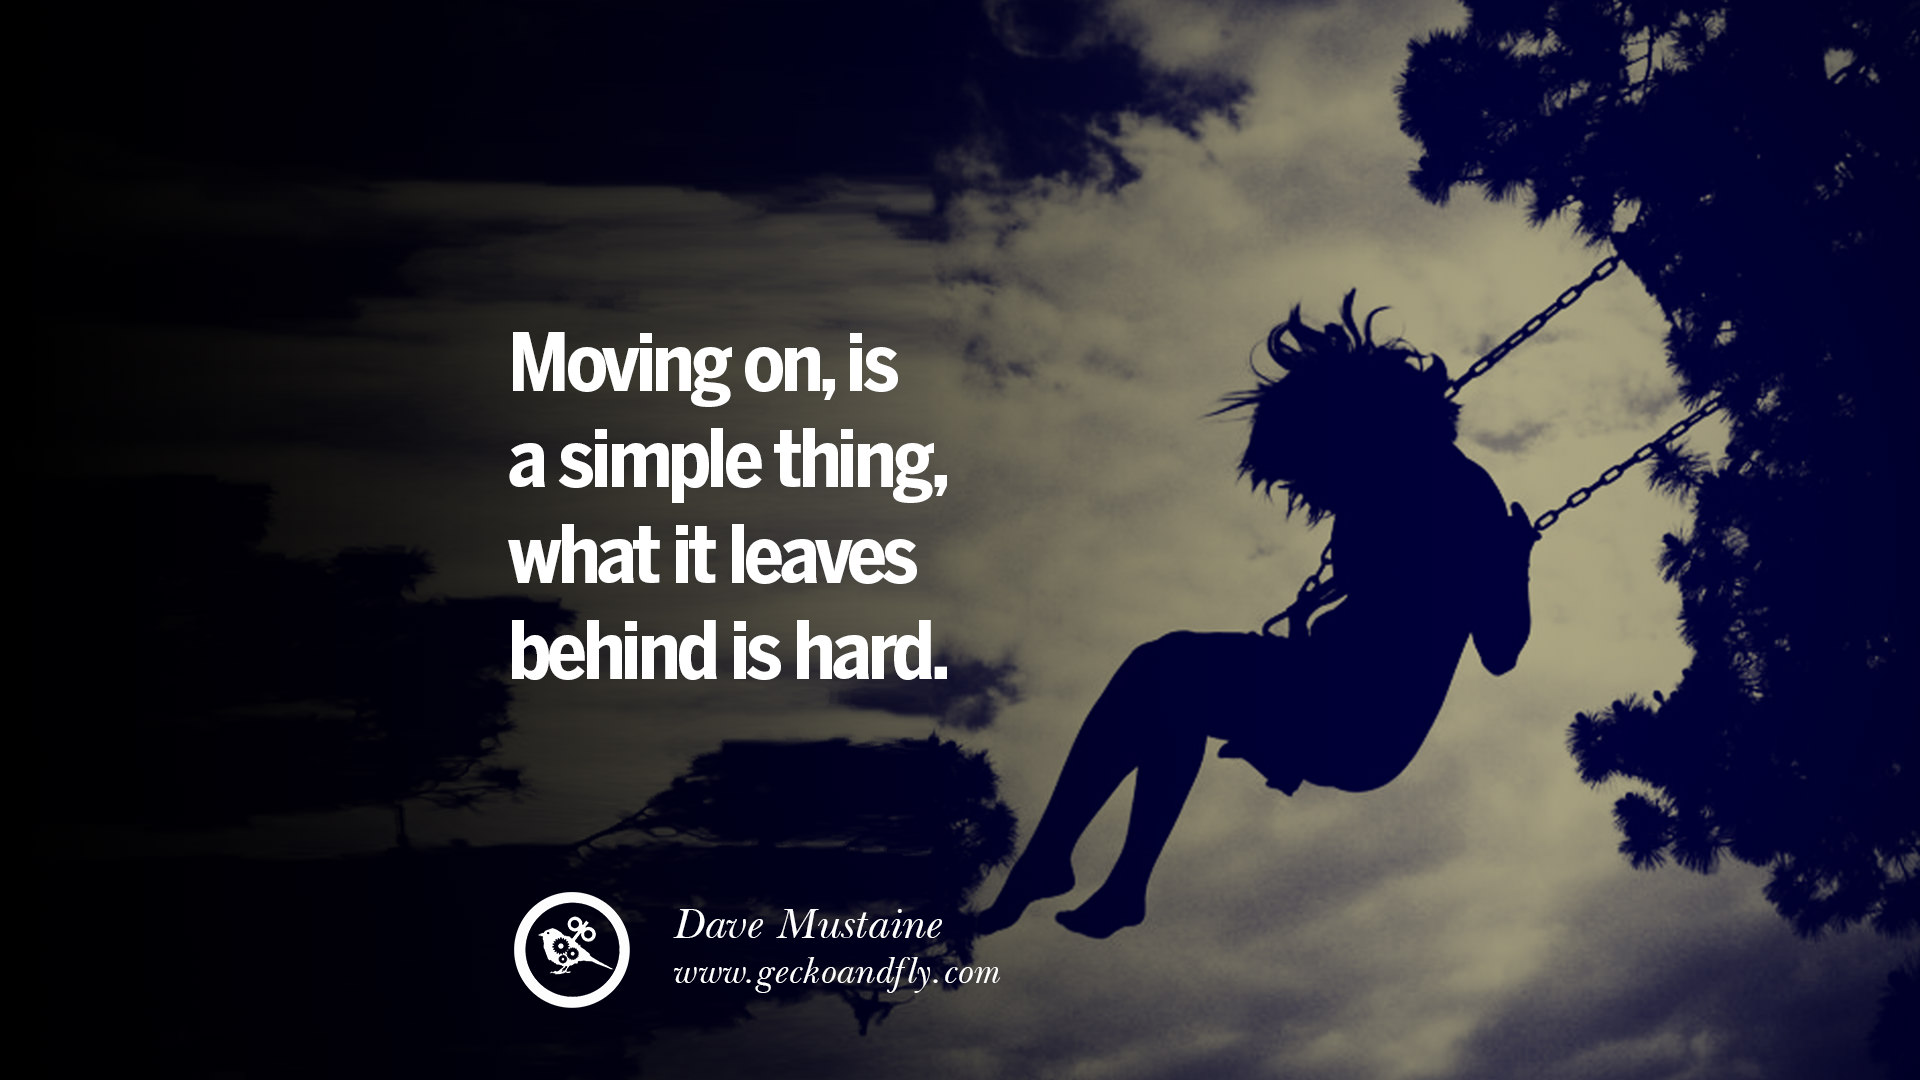 letting go and moving on from a relationship